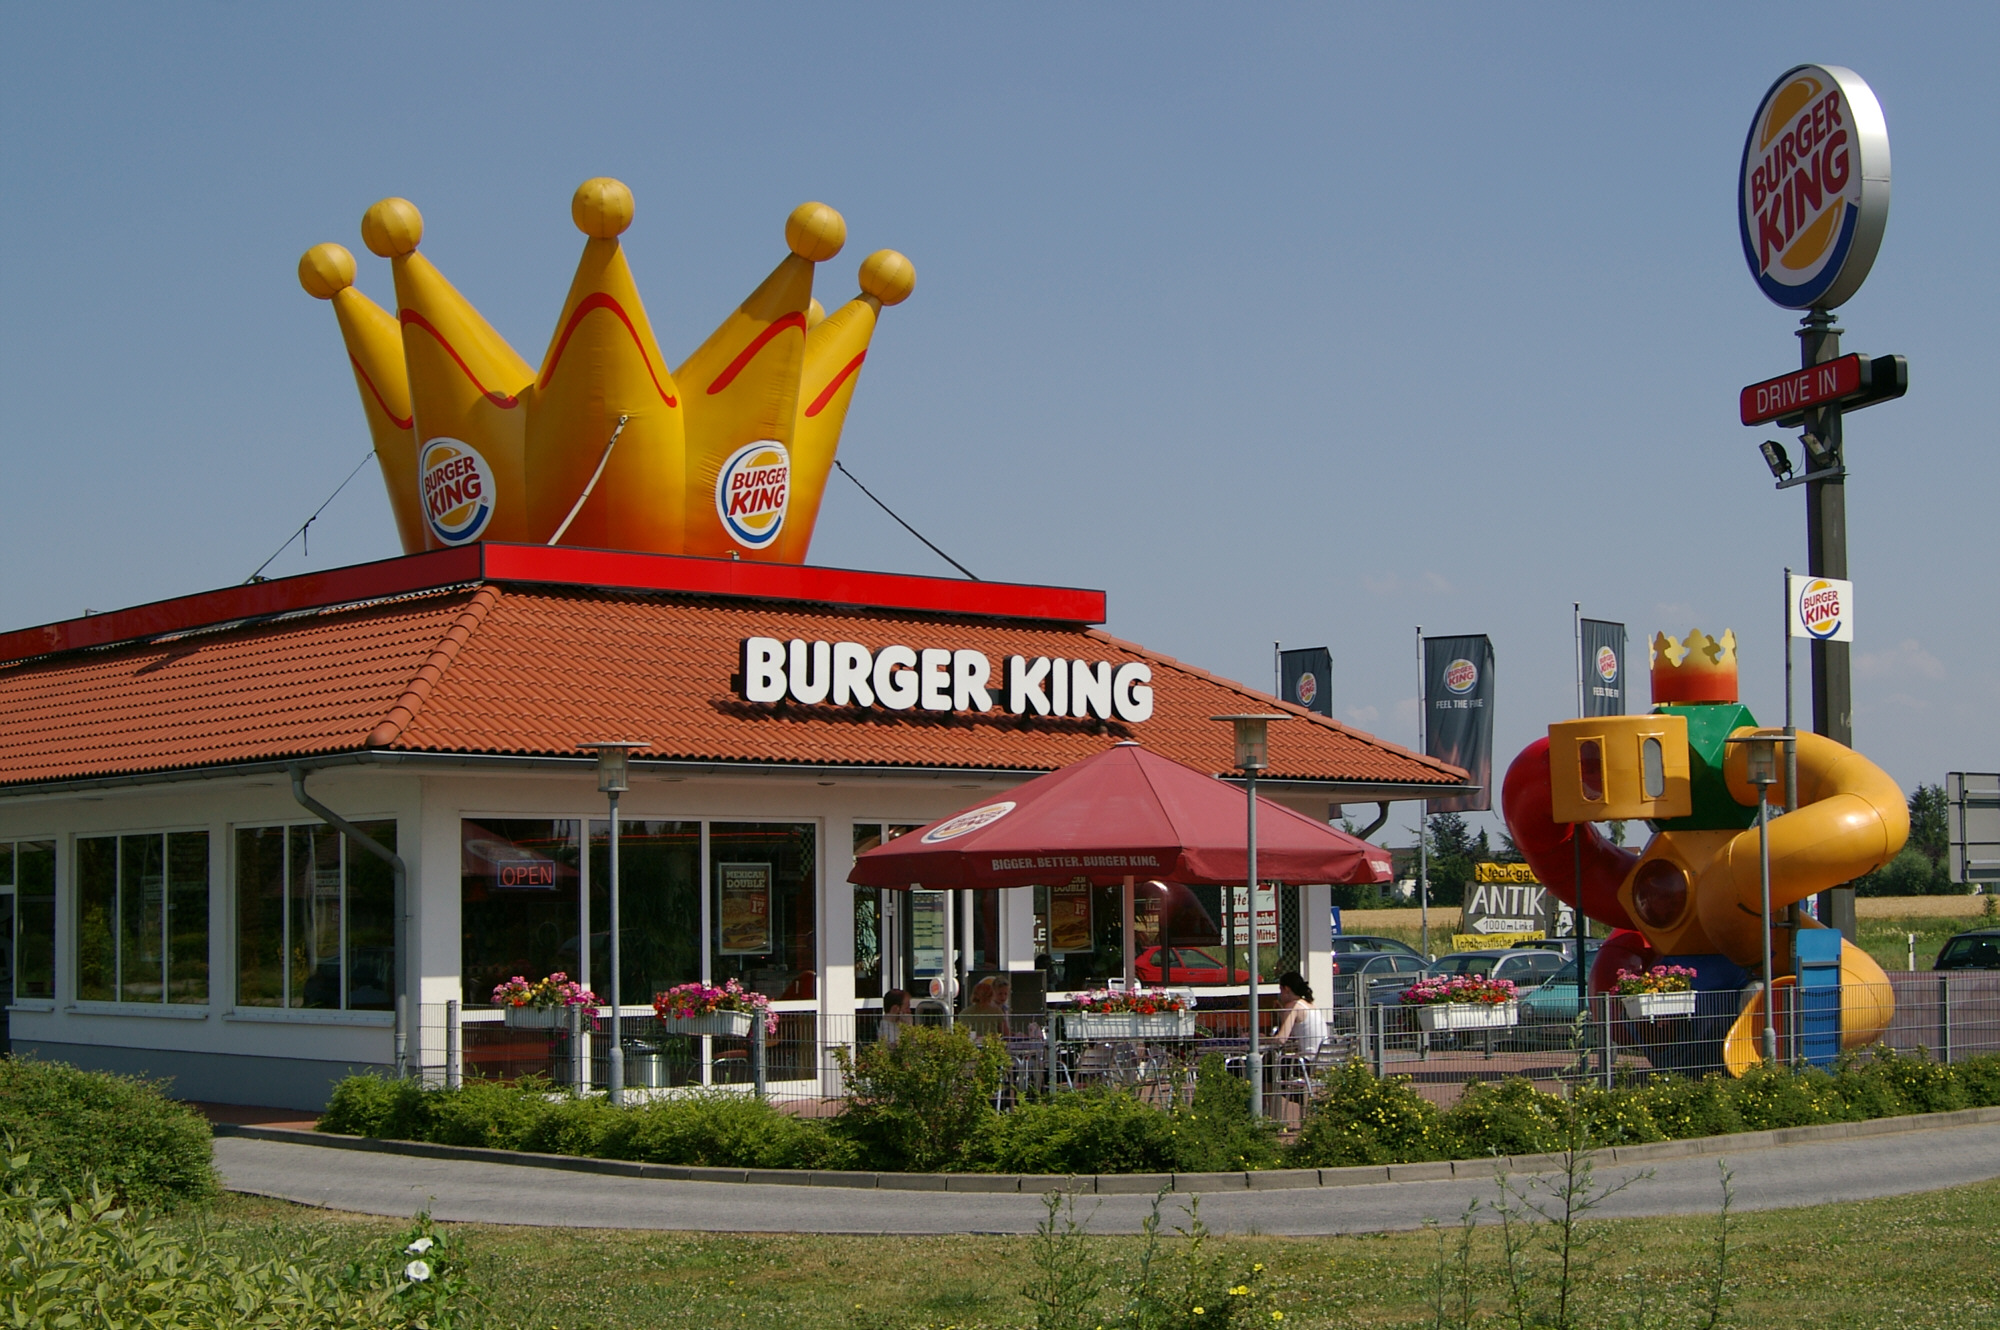 Opinions on Burger King